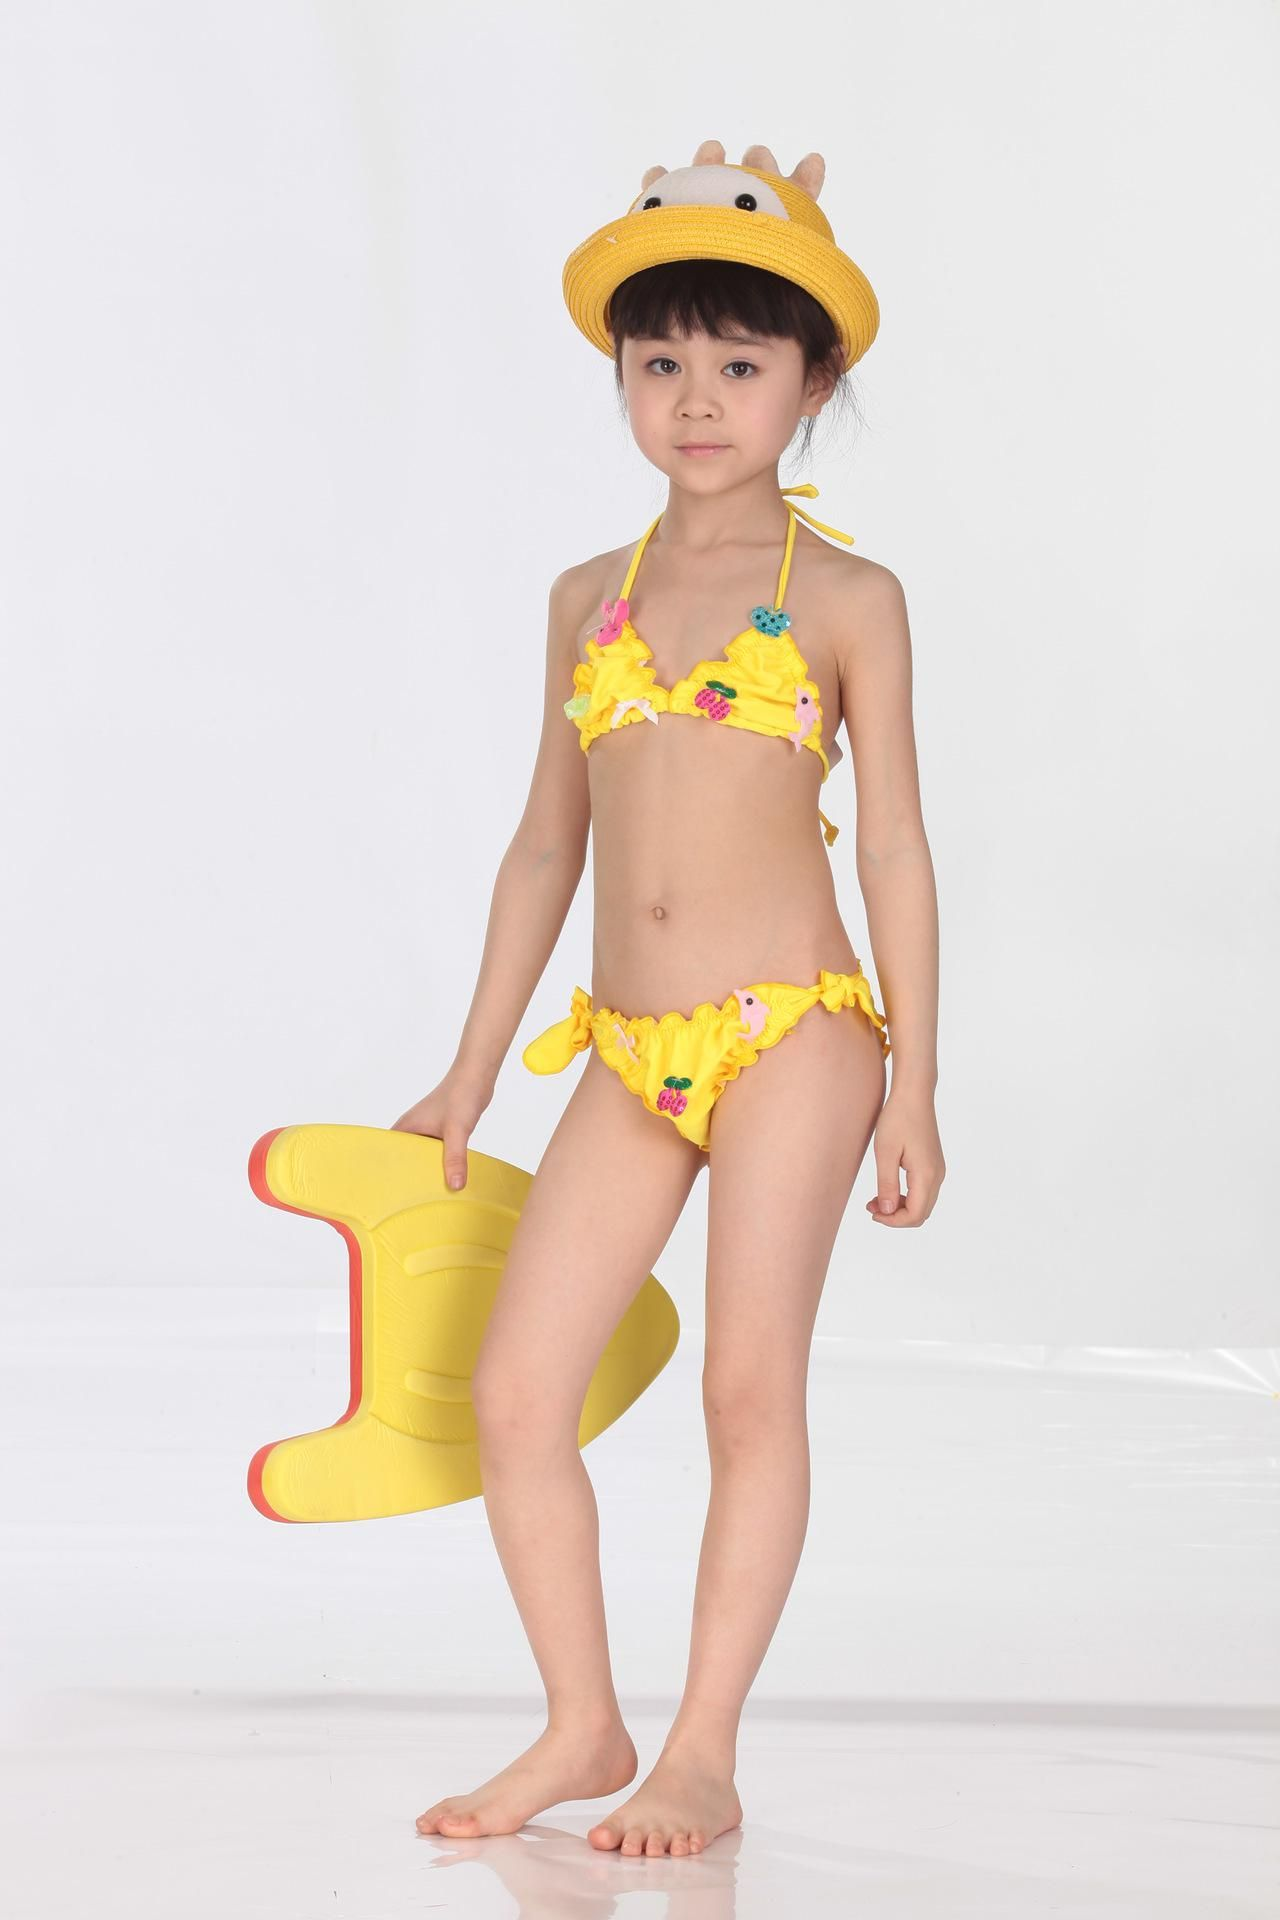 0cc055e1bcc49 Swimming Wear Kids Girls Swim Fashion Minnie Swimsuit Girls Bikini Swim  Bathing Suit Butterfly Bow Fish Dolphin Swimsuit A662 Juniors Swimwear  Wholesale ...